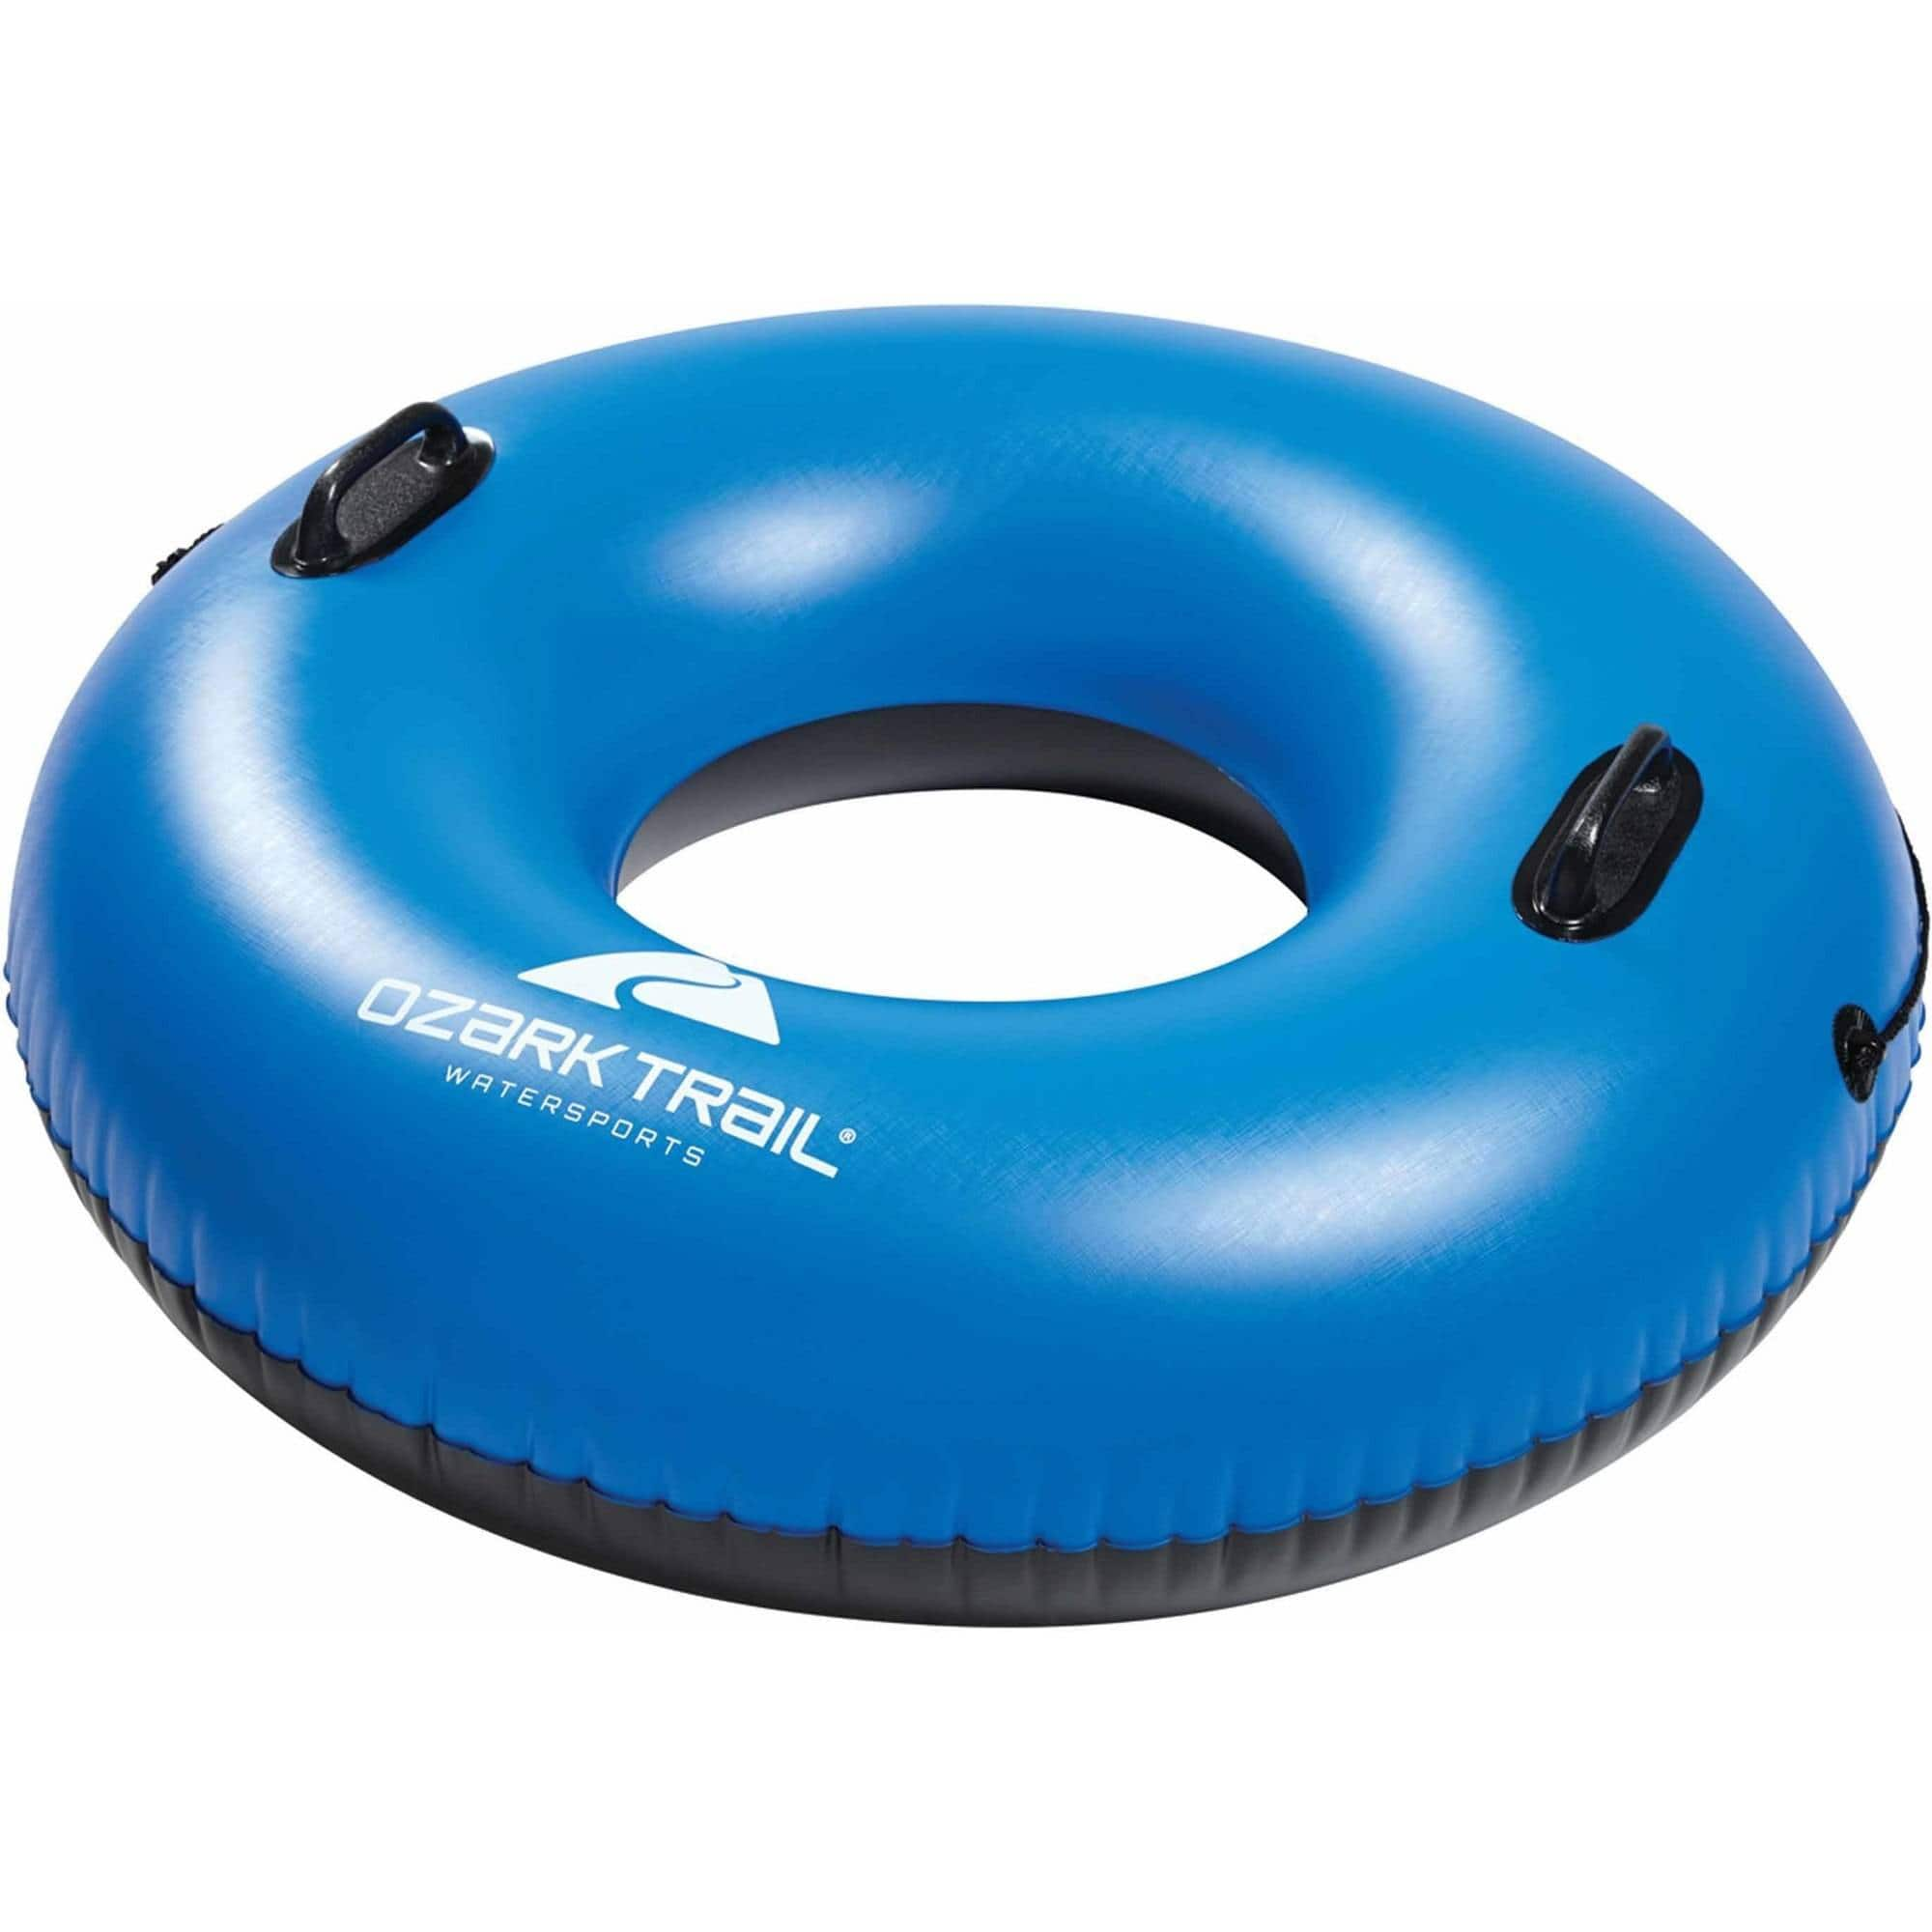 "Ozark Trail 45"" Easy-Board River Tube (various colors)  $4.95 + Free Shipping"